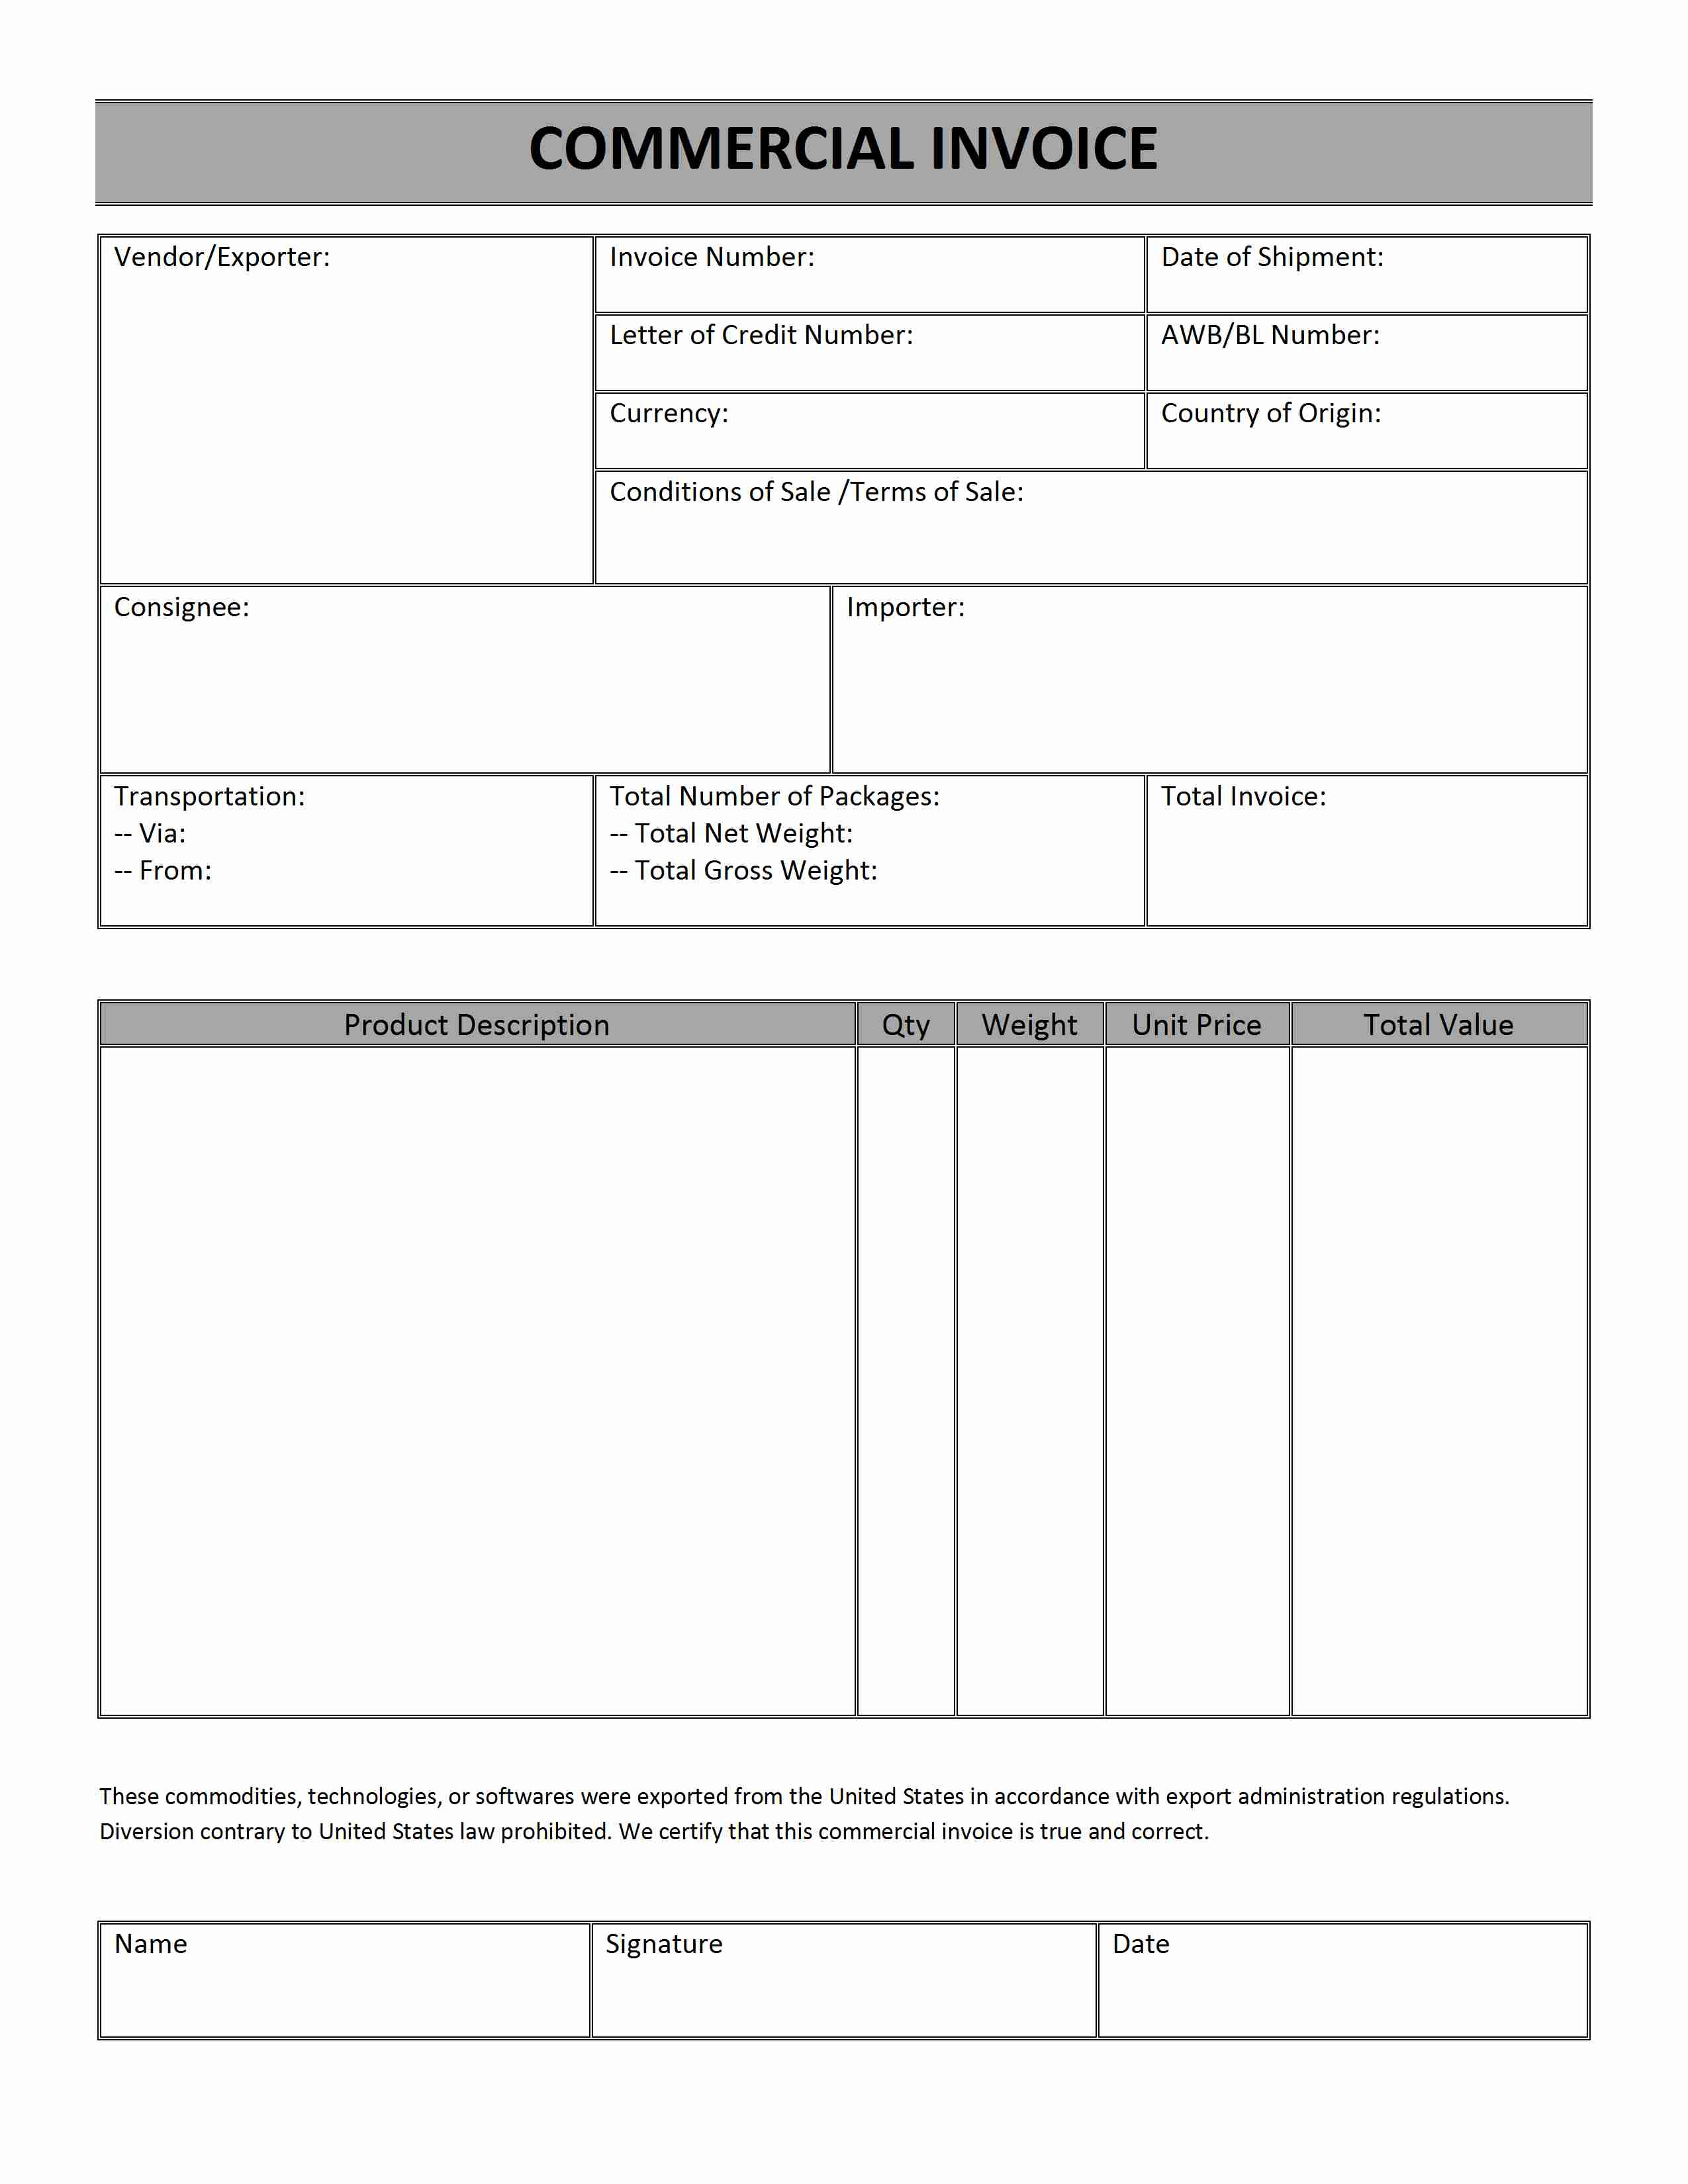 Opposenewapstandardsus  Remarkable Printable Sales Invoice Simple Invoice Form Free Invoice  With Outstanding Printable Receipt Free  Free Printable Raffle Tickets  Receipt   Printable With Beauteous Kelley Blue Book Dealer Invoice Price Also Invoice Jobs In Addition Shop Invoice And Express Invoices As Well As Audi Q Invoice Additionally Example Of Invoice Letter From Happytomco With Opposenewapstandardsus  Outstanding Printable Sales Invoice Simple Invoice Form Free Invoice  With Beauteous Printable Receipt Free  Free Printable Raffle Tickets  Receipt   Printable And Remarkable Kelley Blue Book Dealer Invoice Price Also Invoice Jobs In Addition Shop Invoice From Happytomco